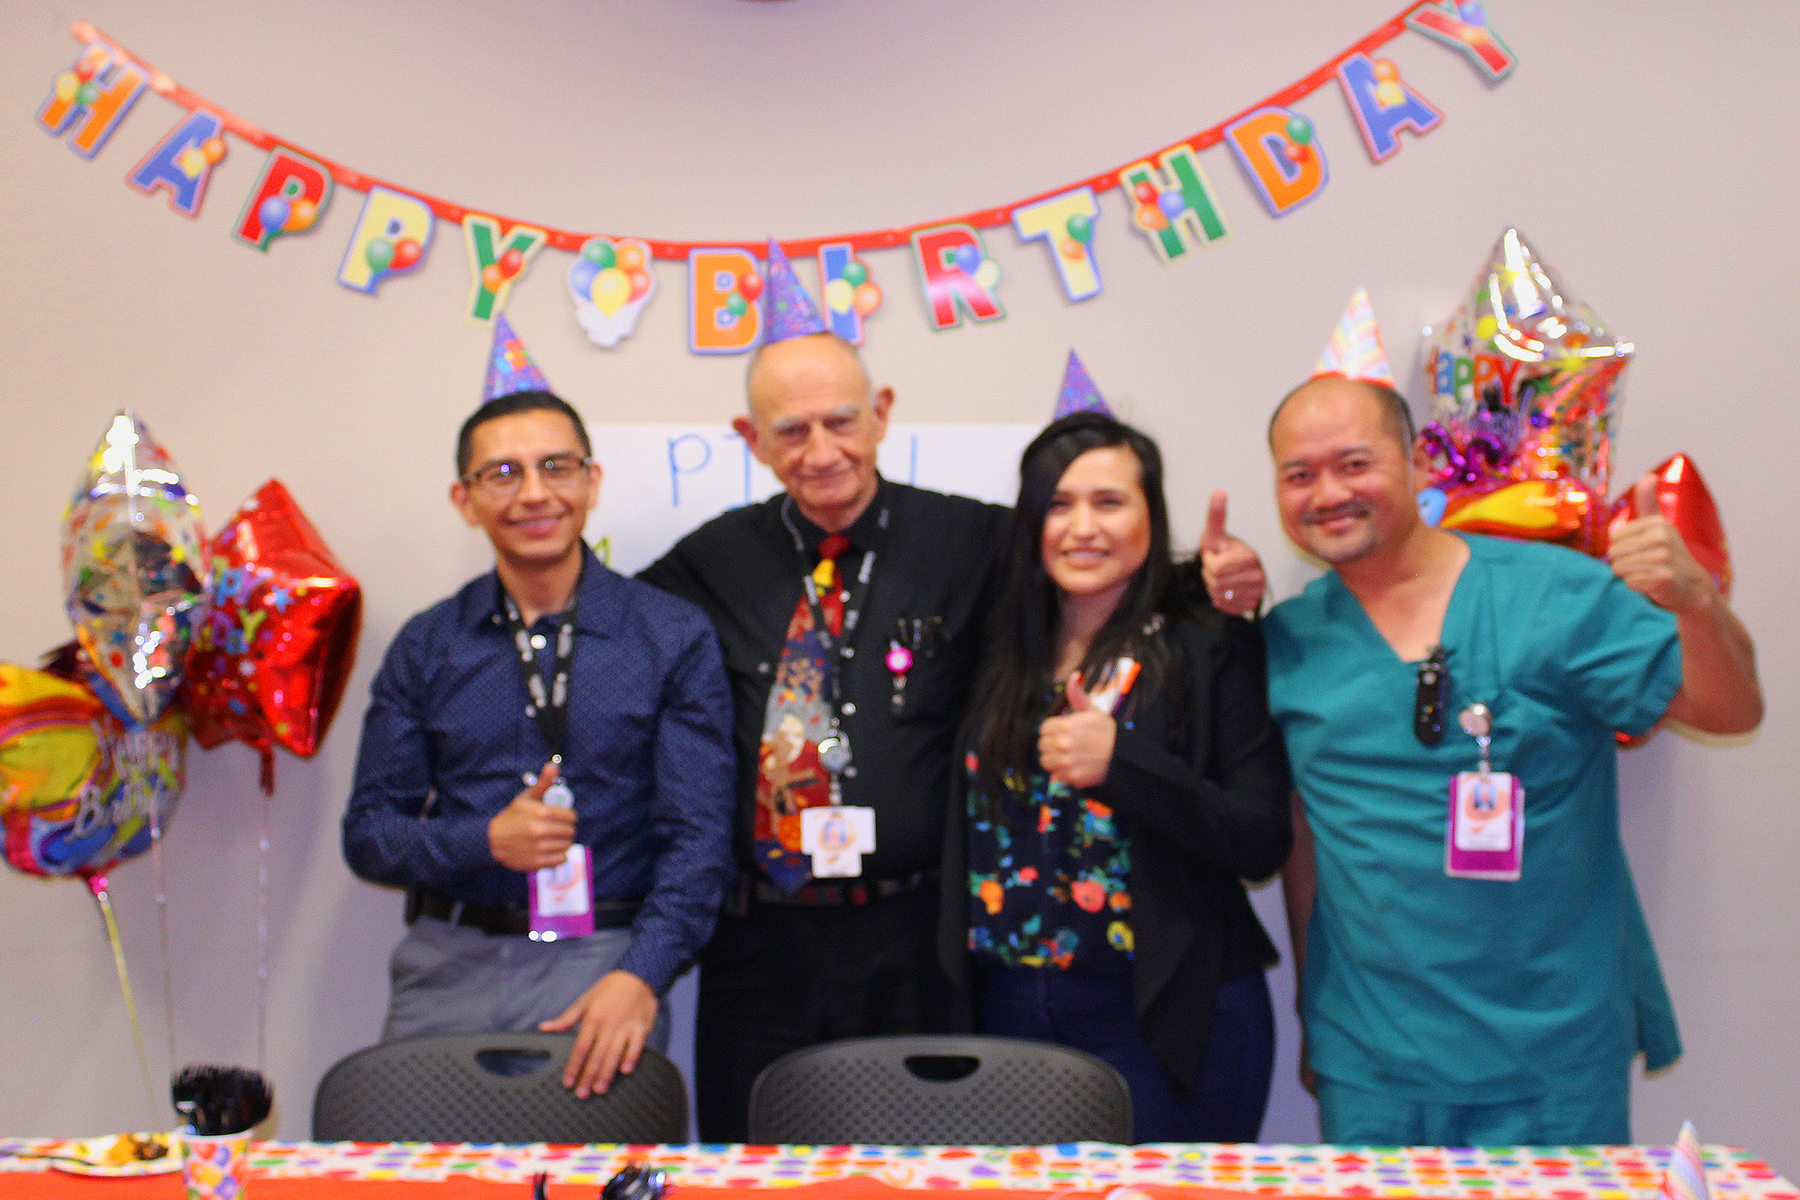 Community Regional's Pediatric ICU turns one